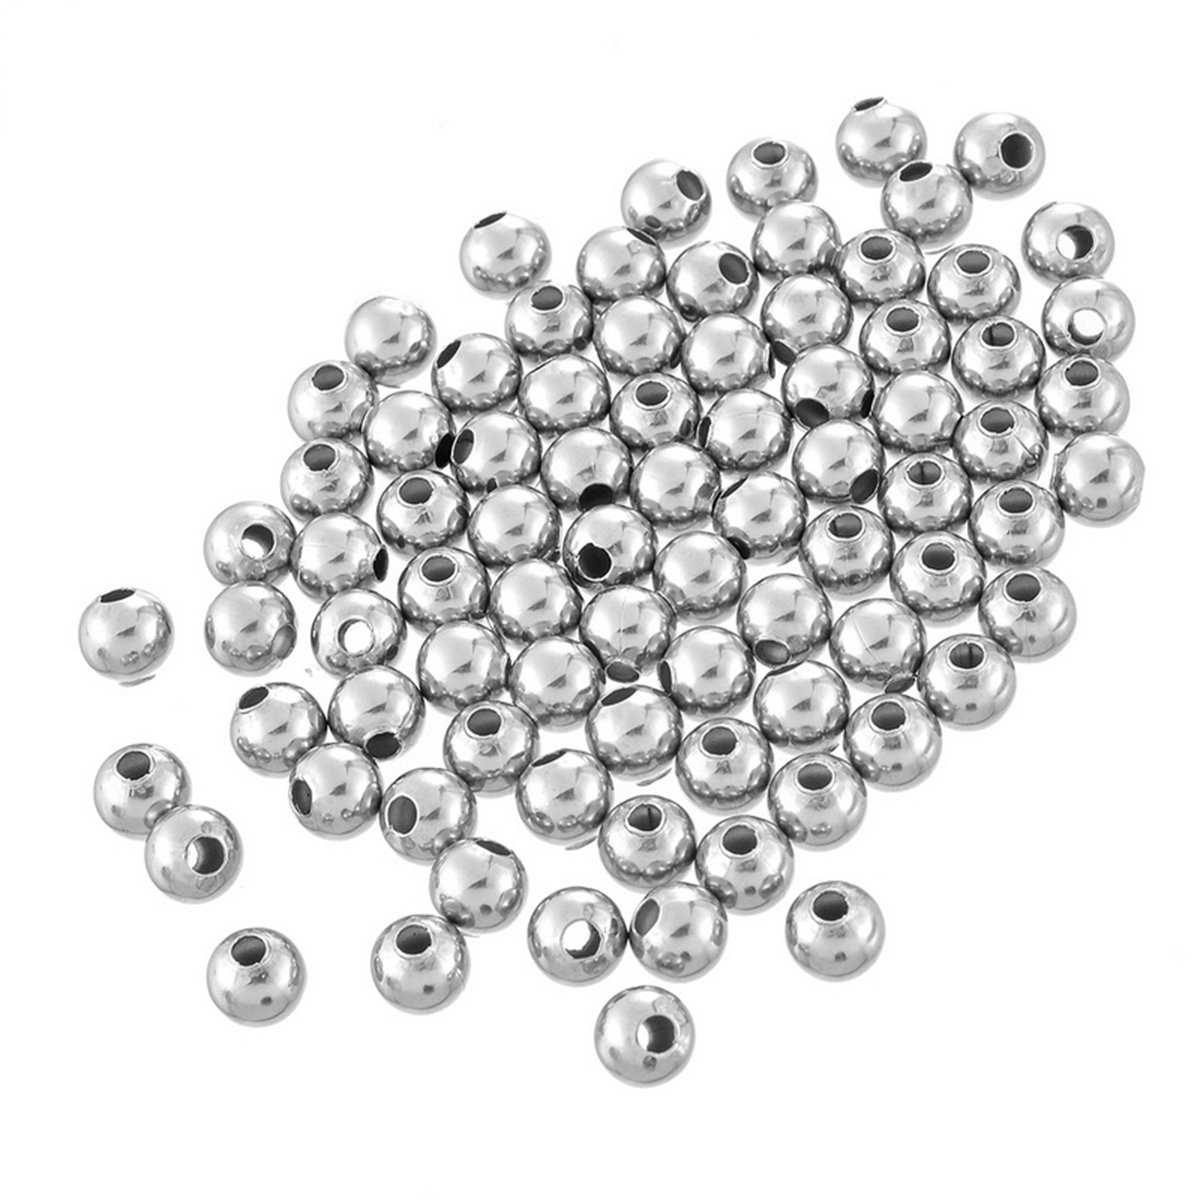 HOUSWEETY Stainless Steel Jewelry Finding Hollow Round Spacer Beads for Jewelry Making HOUSWEETYHS86584